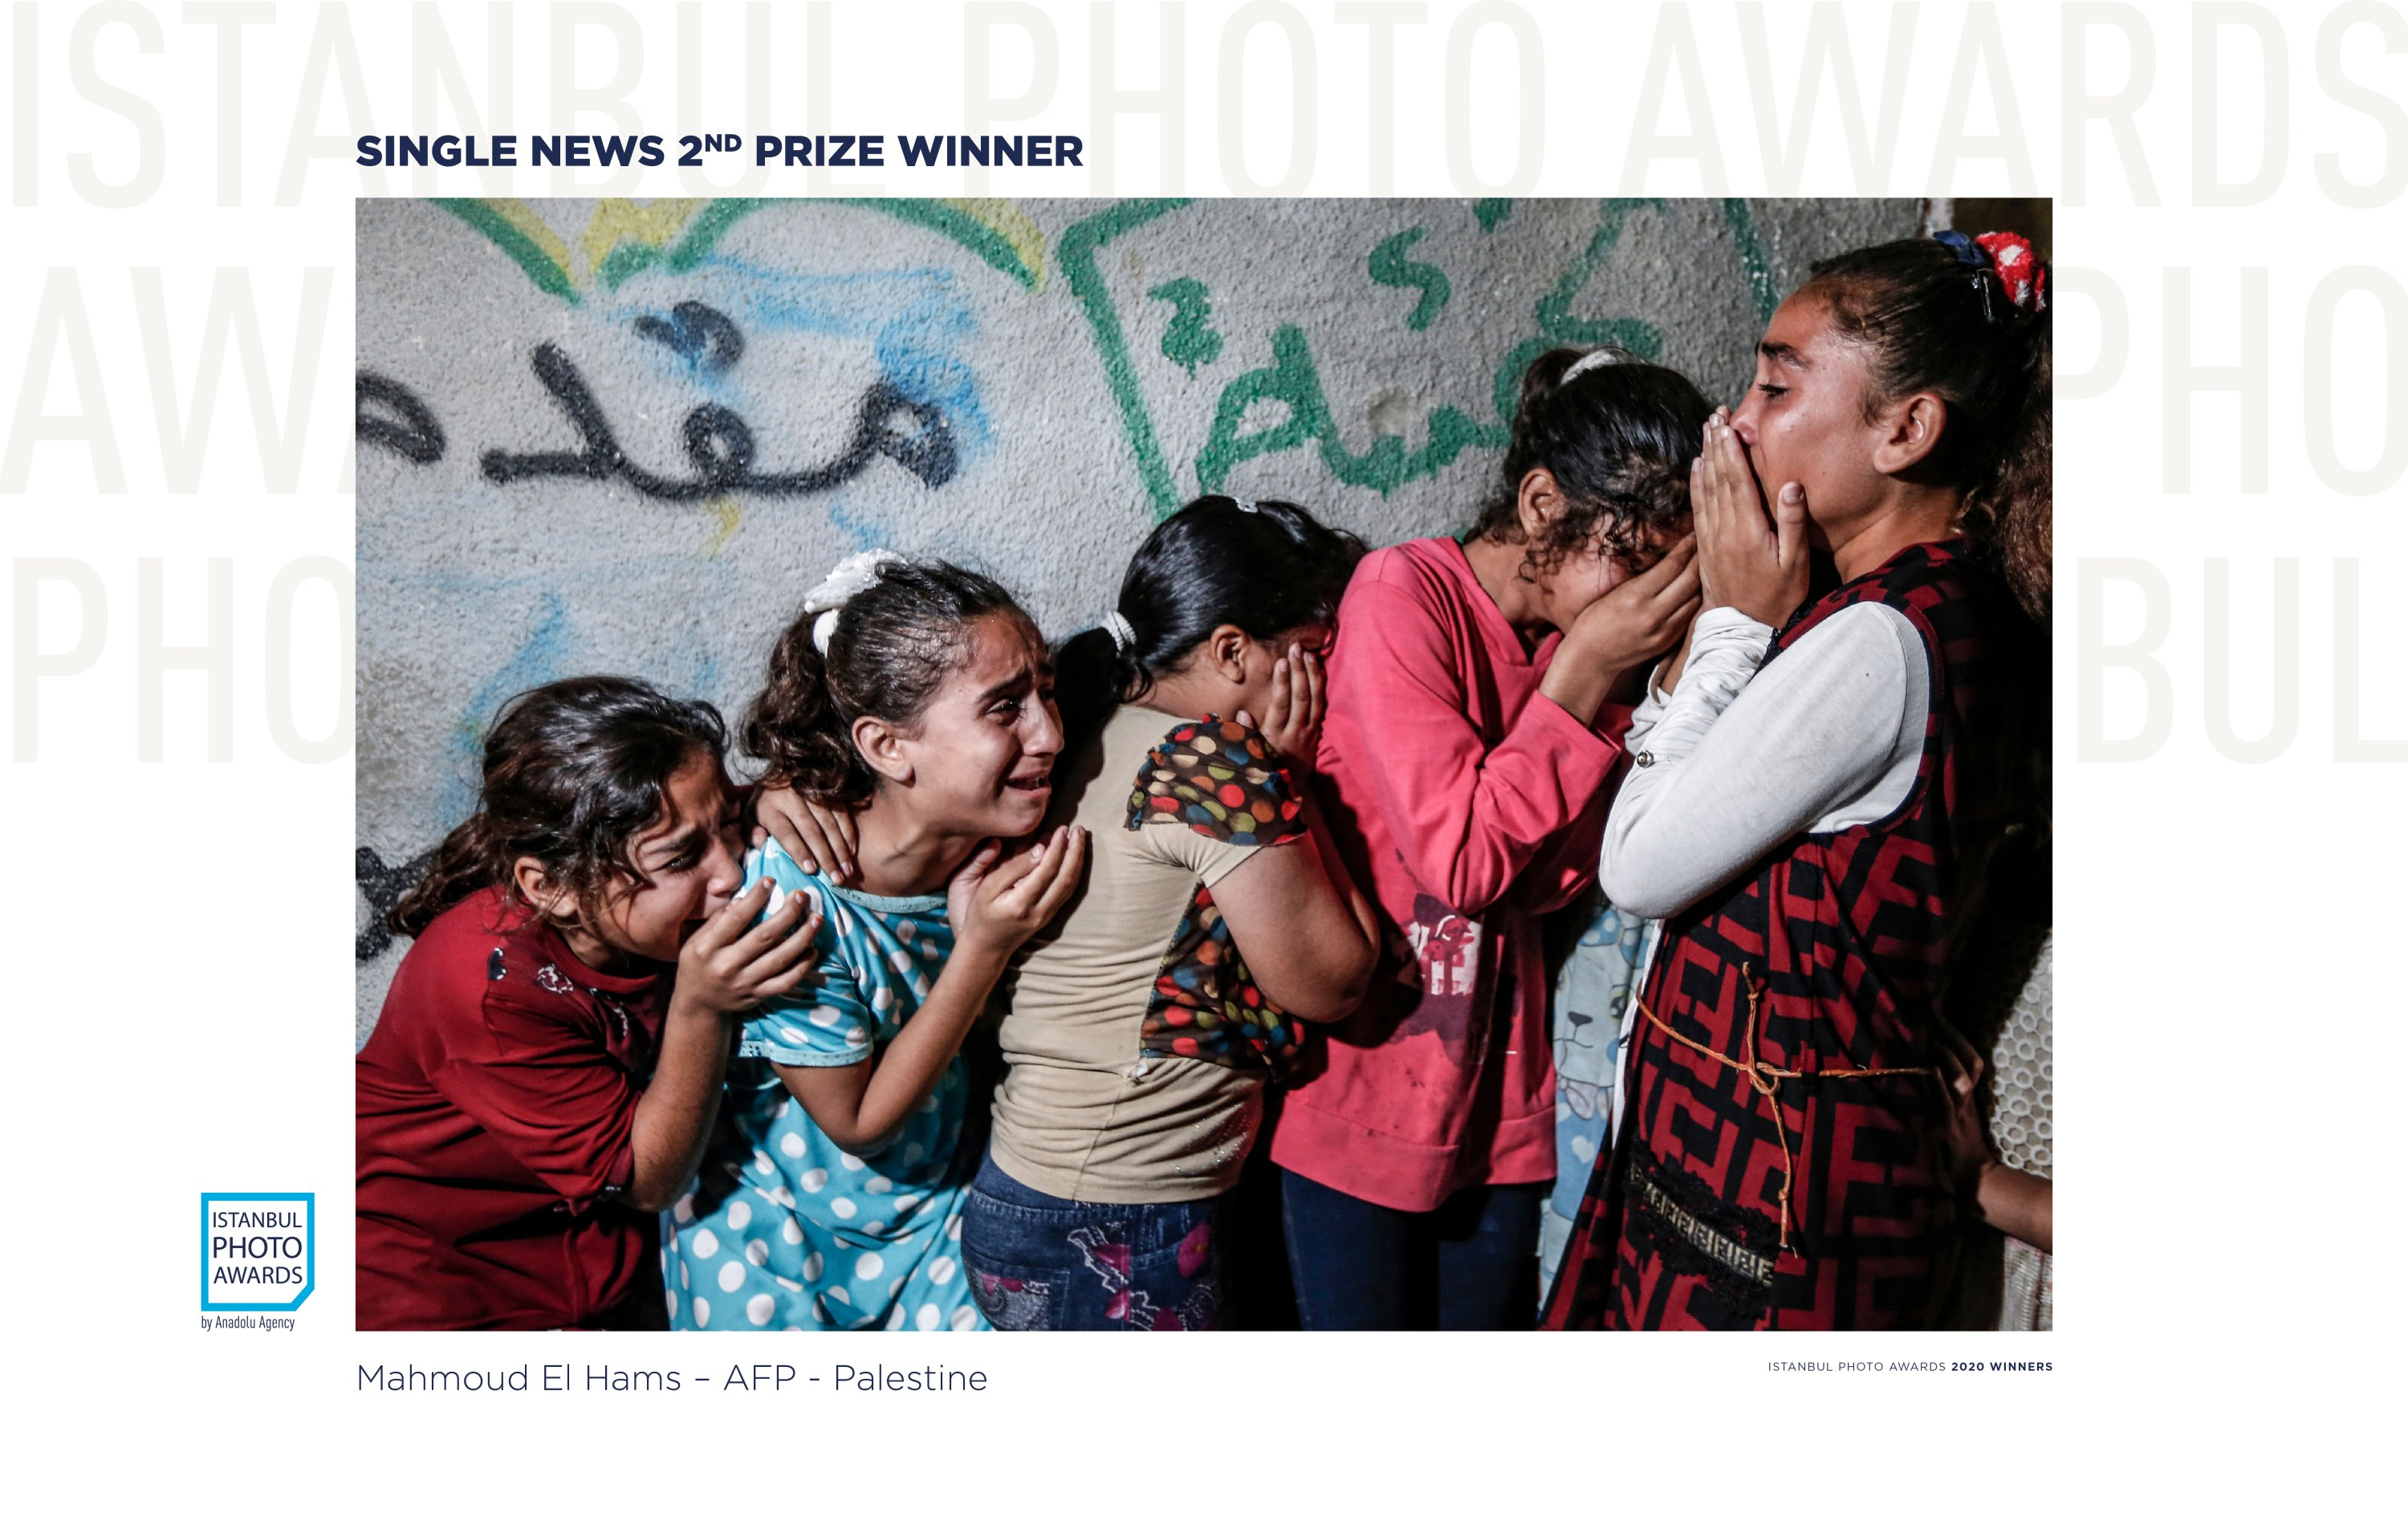 Mahmoud el Hams came in second with his photo titled